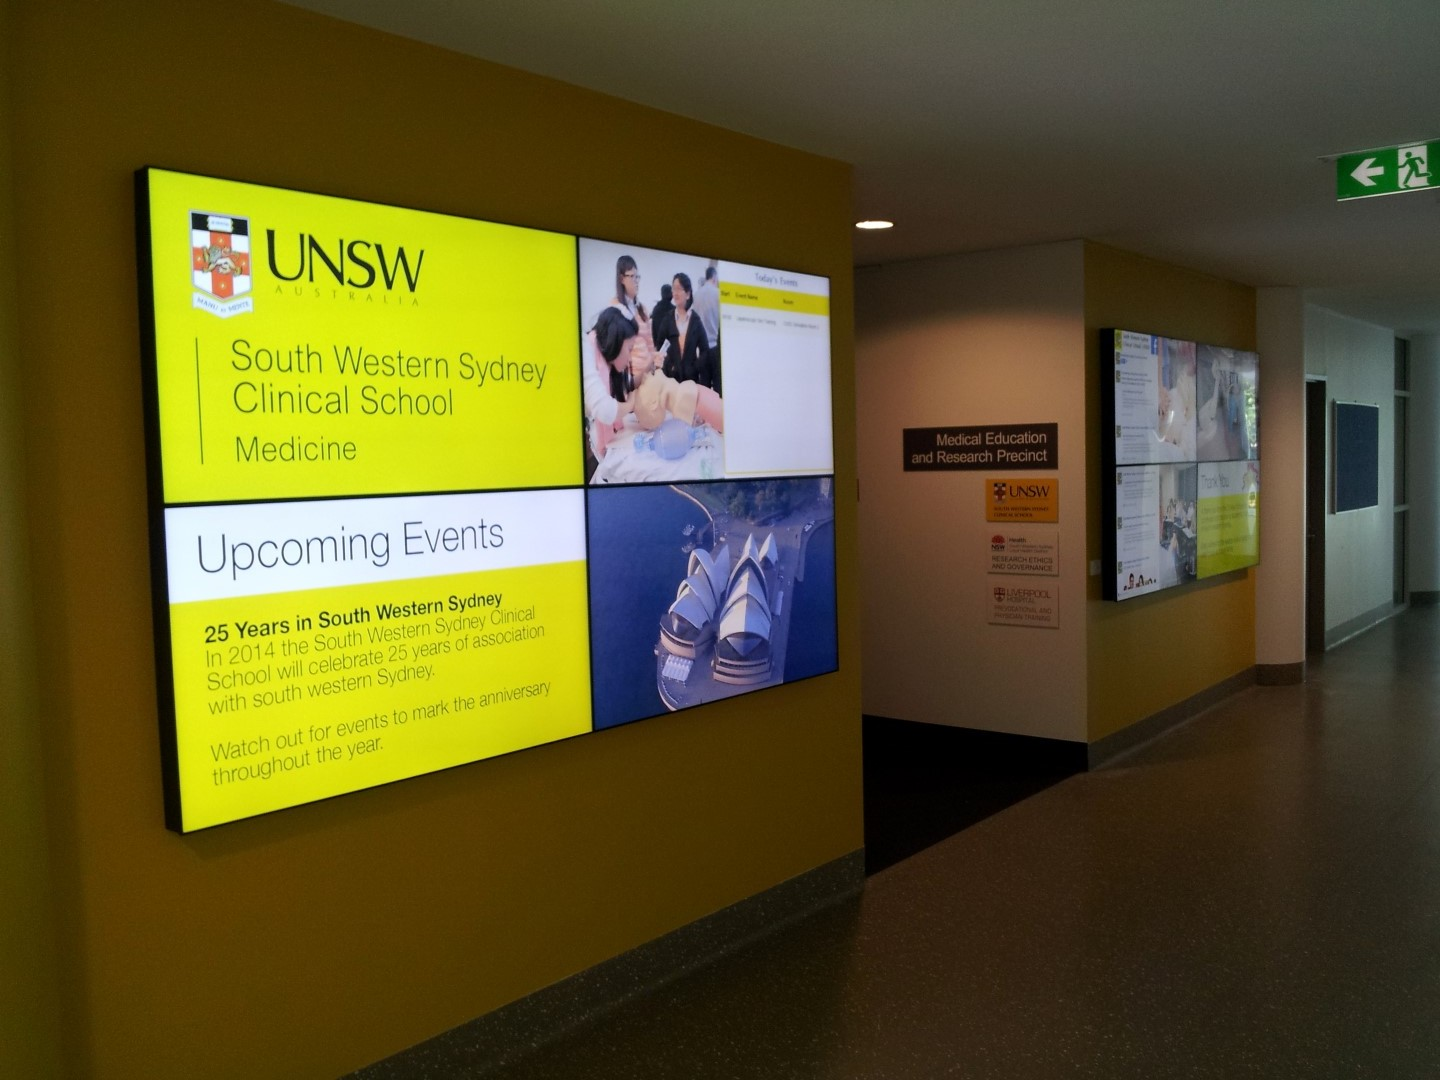 video walls for education, university or schools